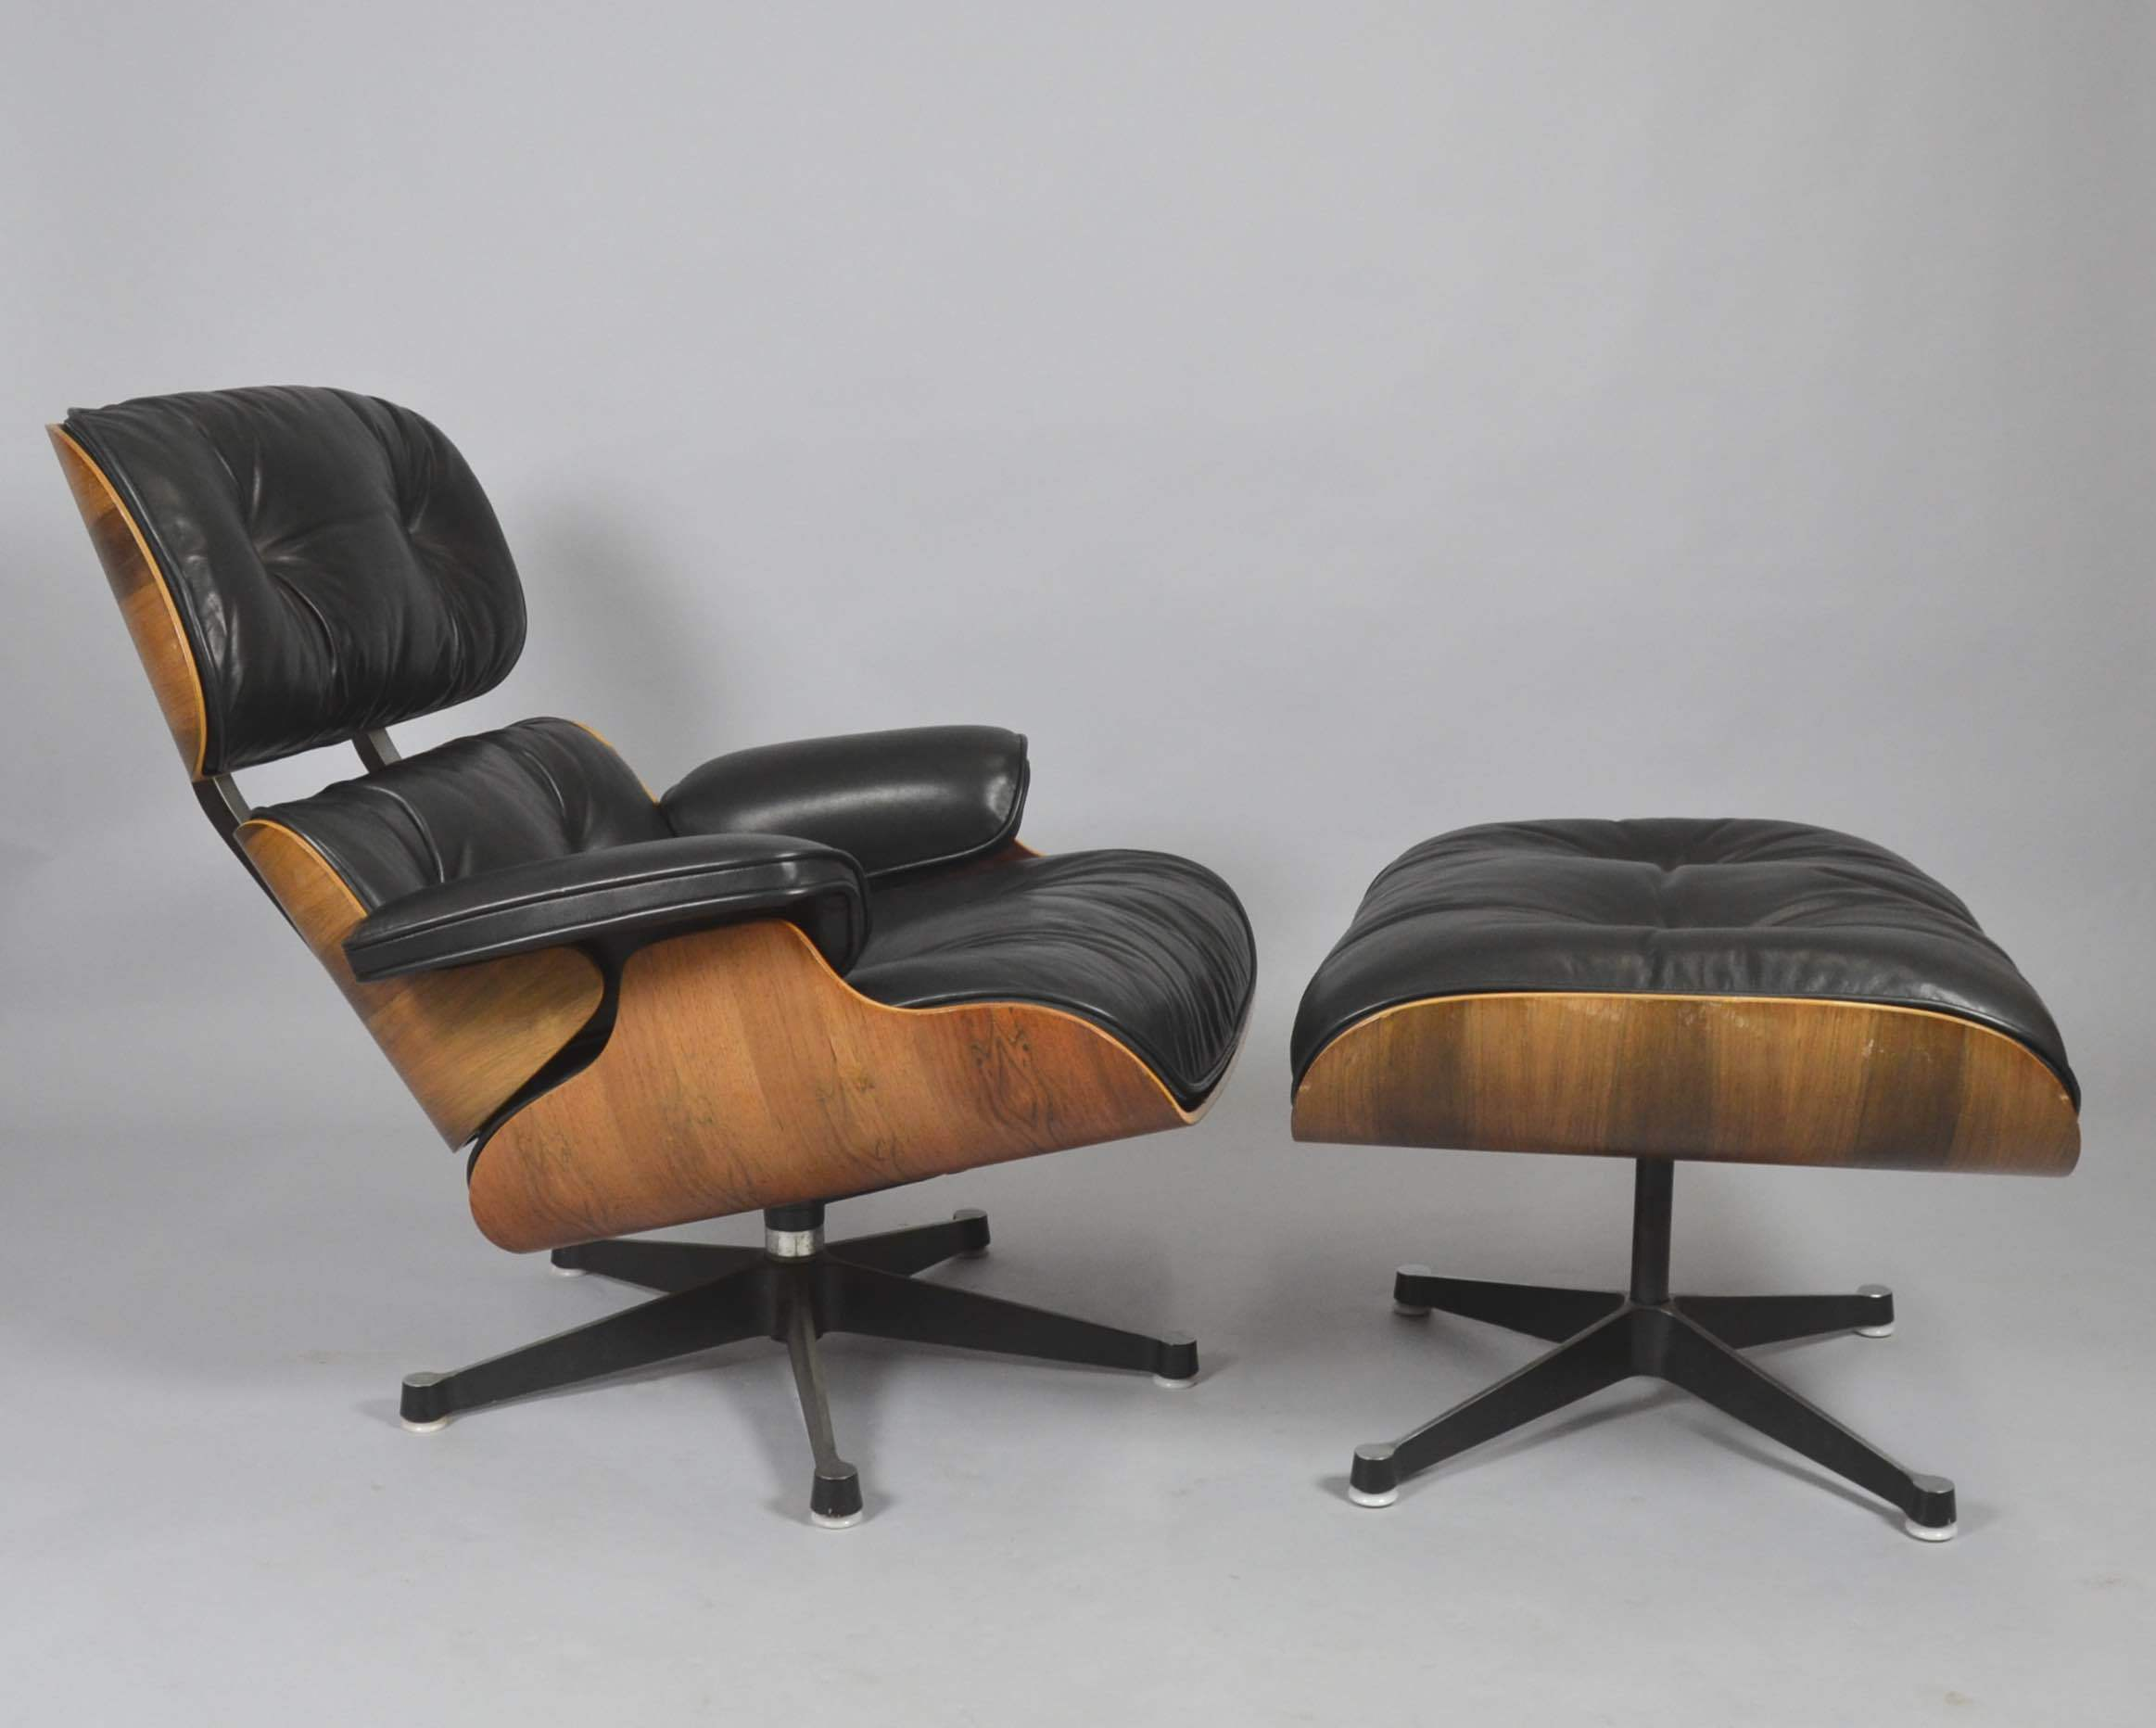 CHARLES U0026 RAY EAMES. LOUNGE CHAIR MIT OTTOMAN FÜR VITRA. Furniture    Armchairs U0026 Chairs   Auctionet